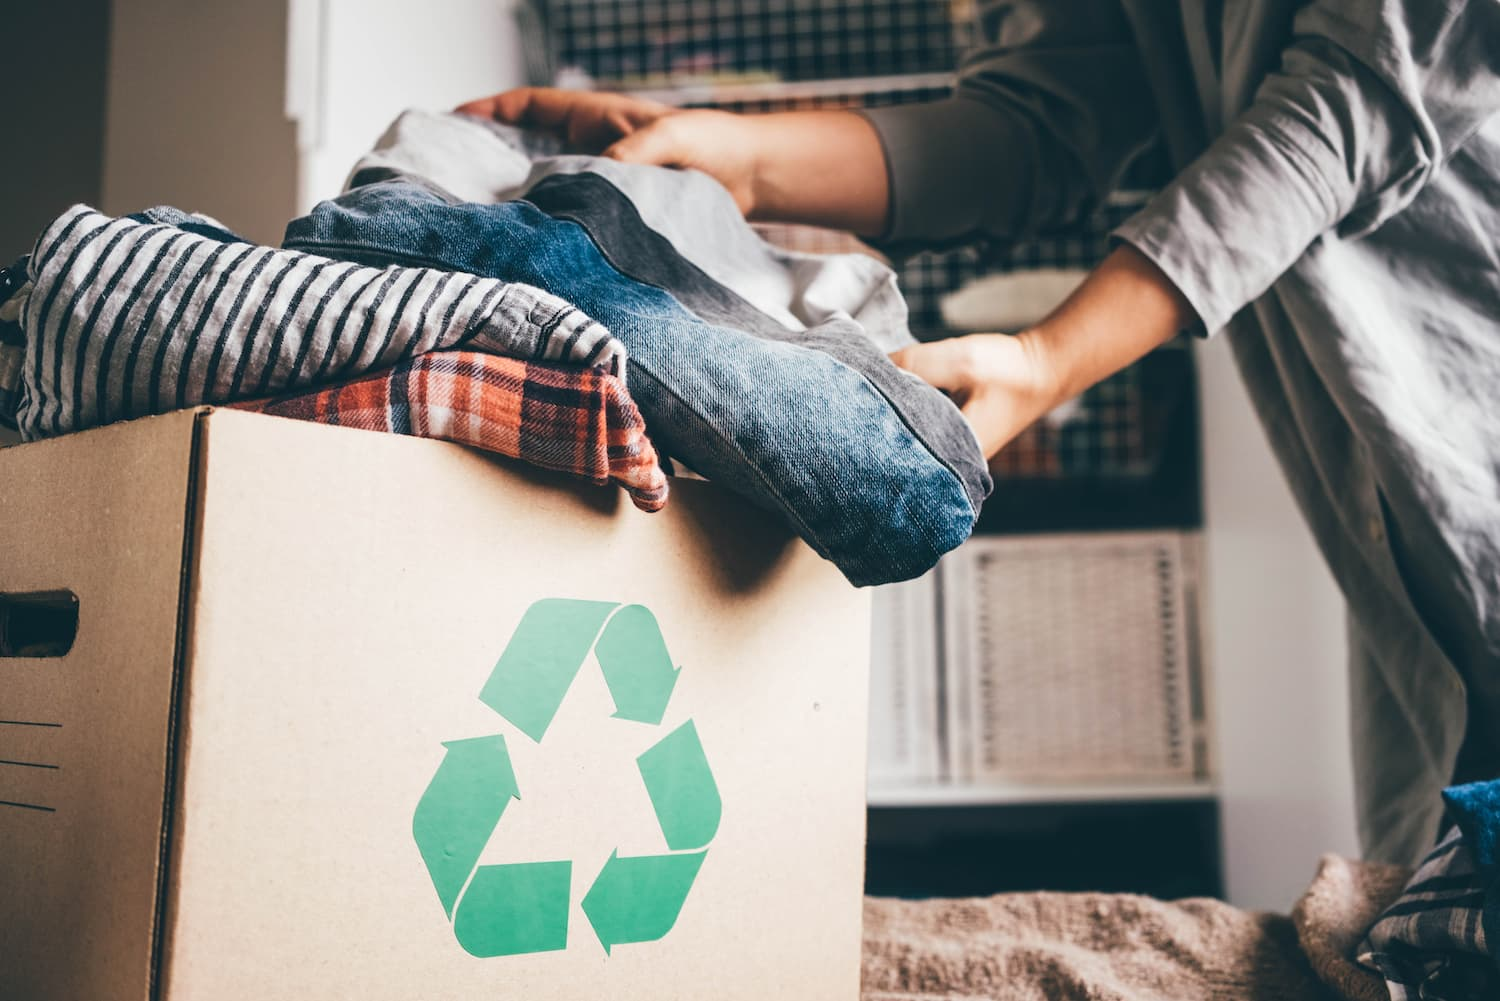 Global Recycling Day: We need to reduce, reuse and recycle